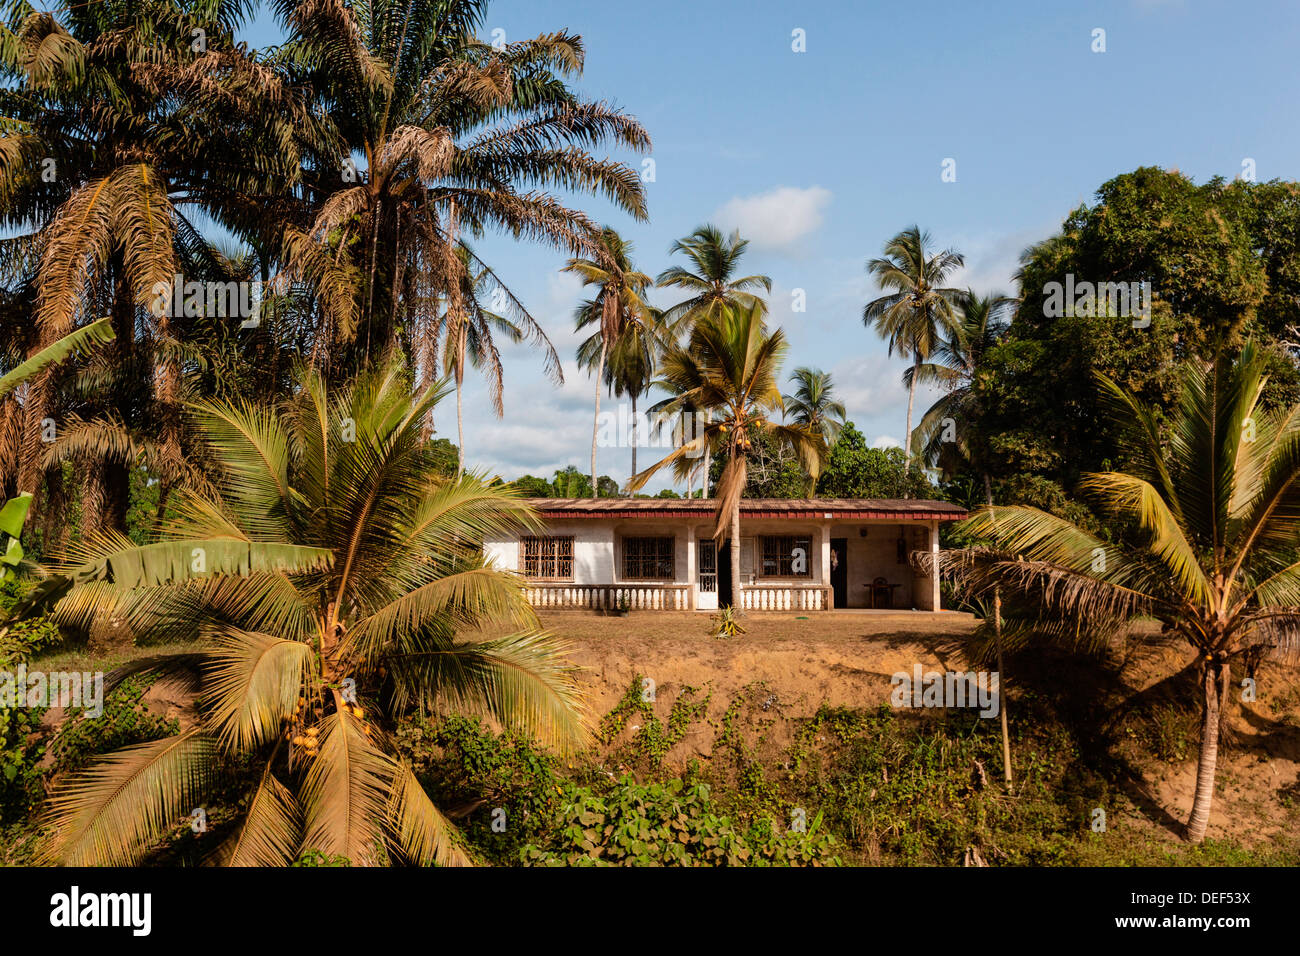 Africa, Cameroon, Kribi. Structure between palms. - Stock Image